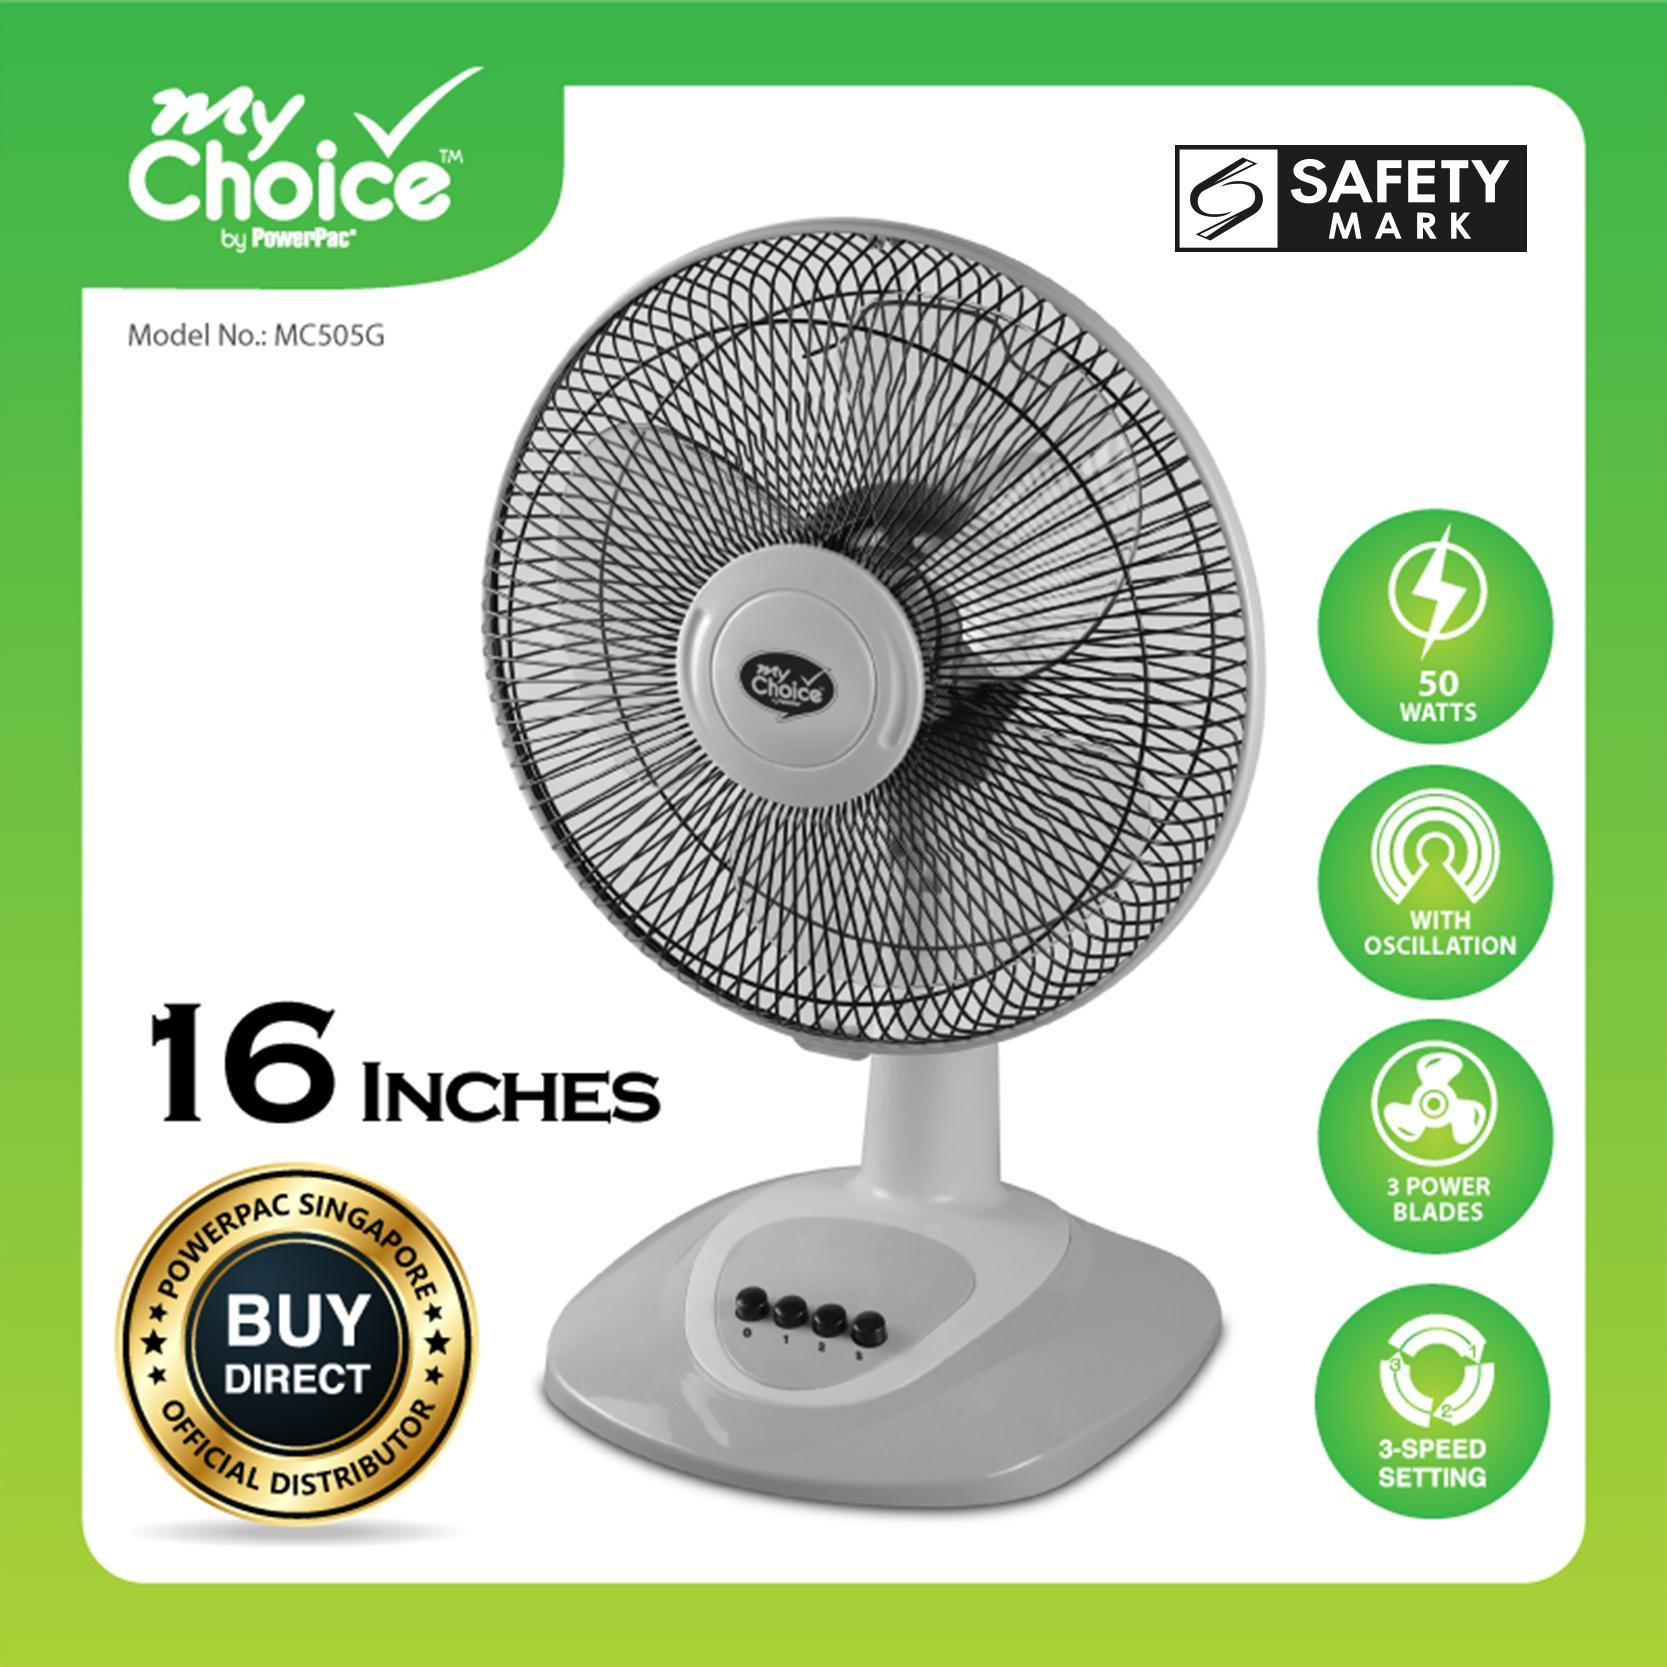 My Choice Powerpac 16 Inches Desk Fan With Oscillation Mc505